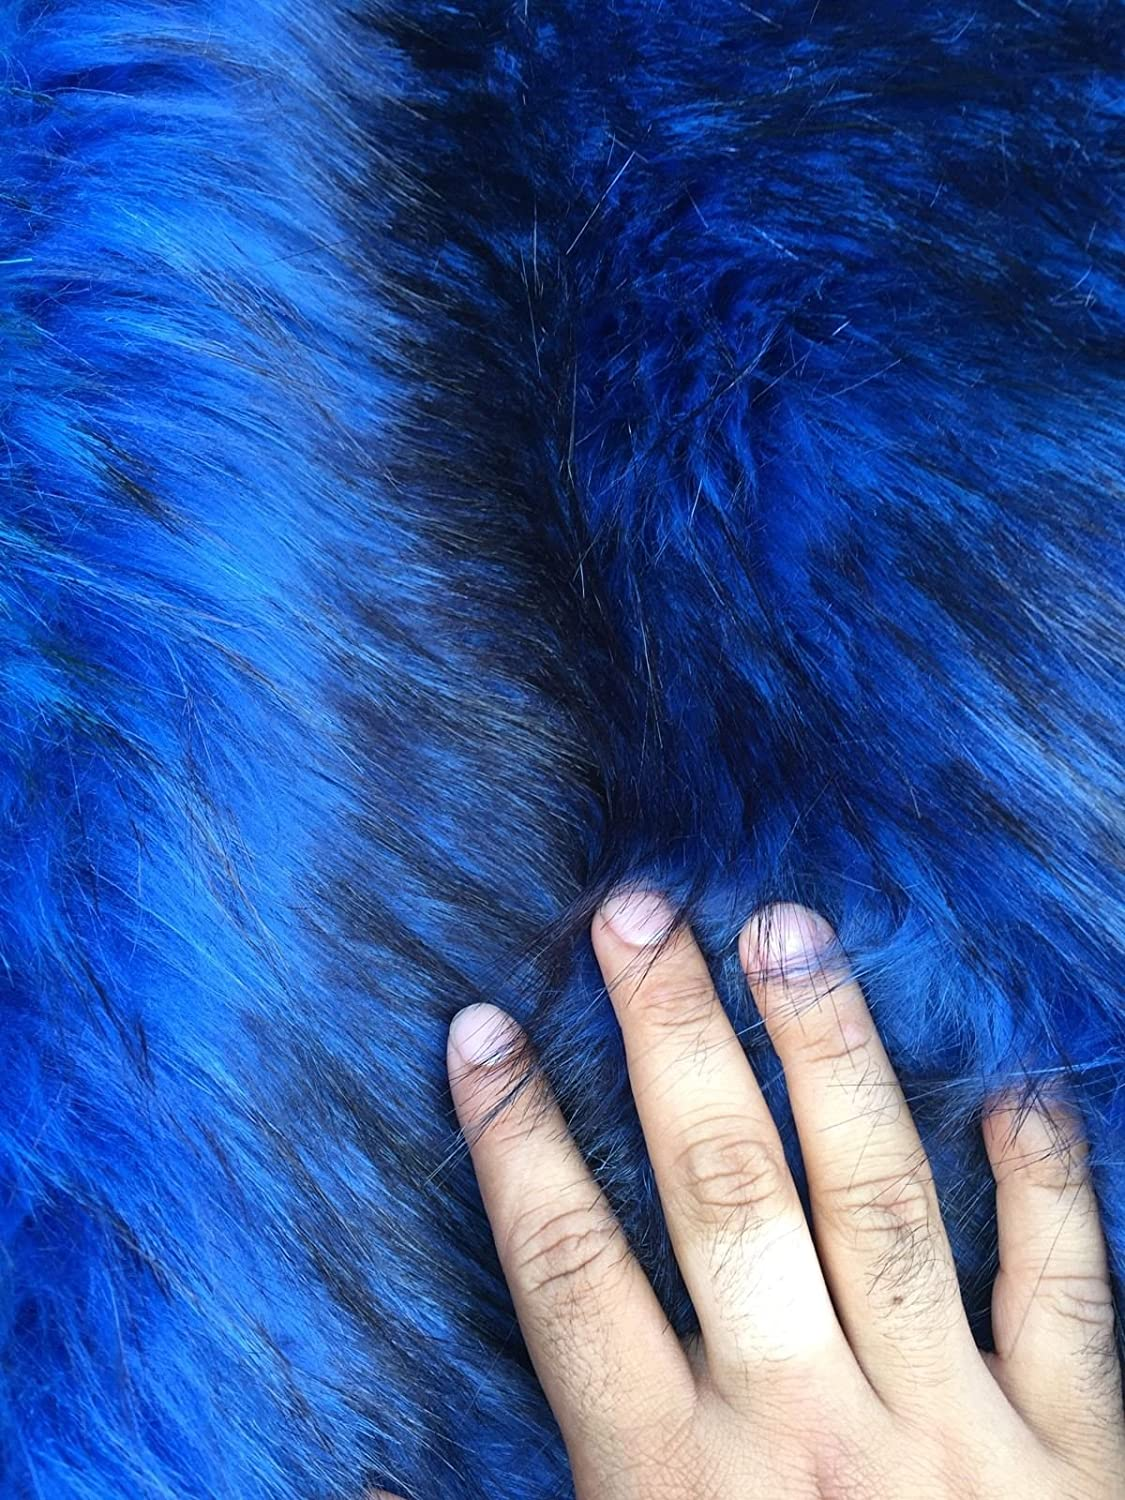 Royal Blue black Husky Faux Max 59% OFF Fur 2 The Shaggy Y Detroit Mall Tone Fur. By Sold